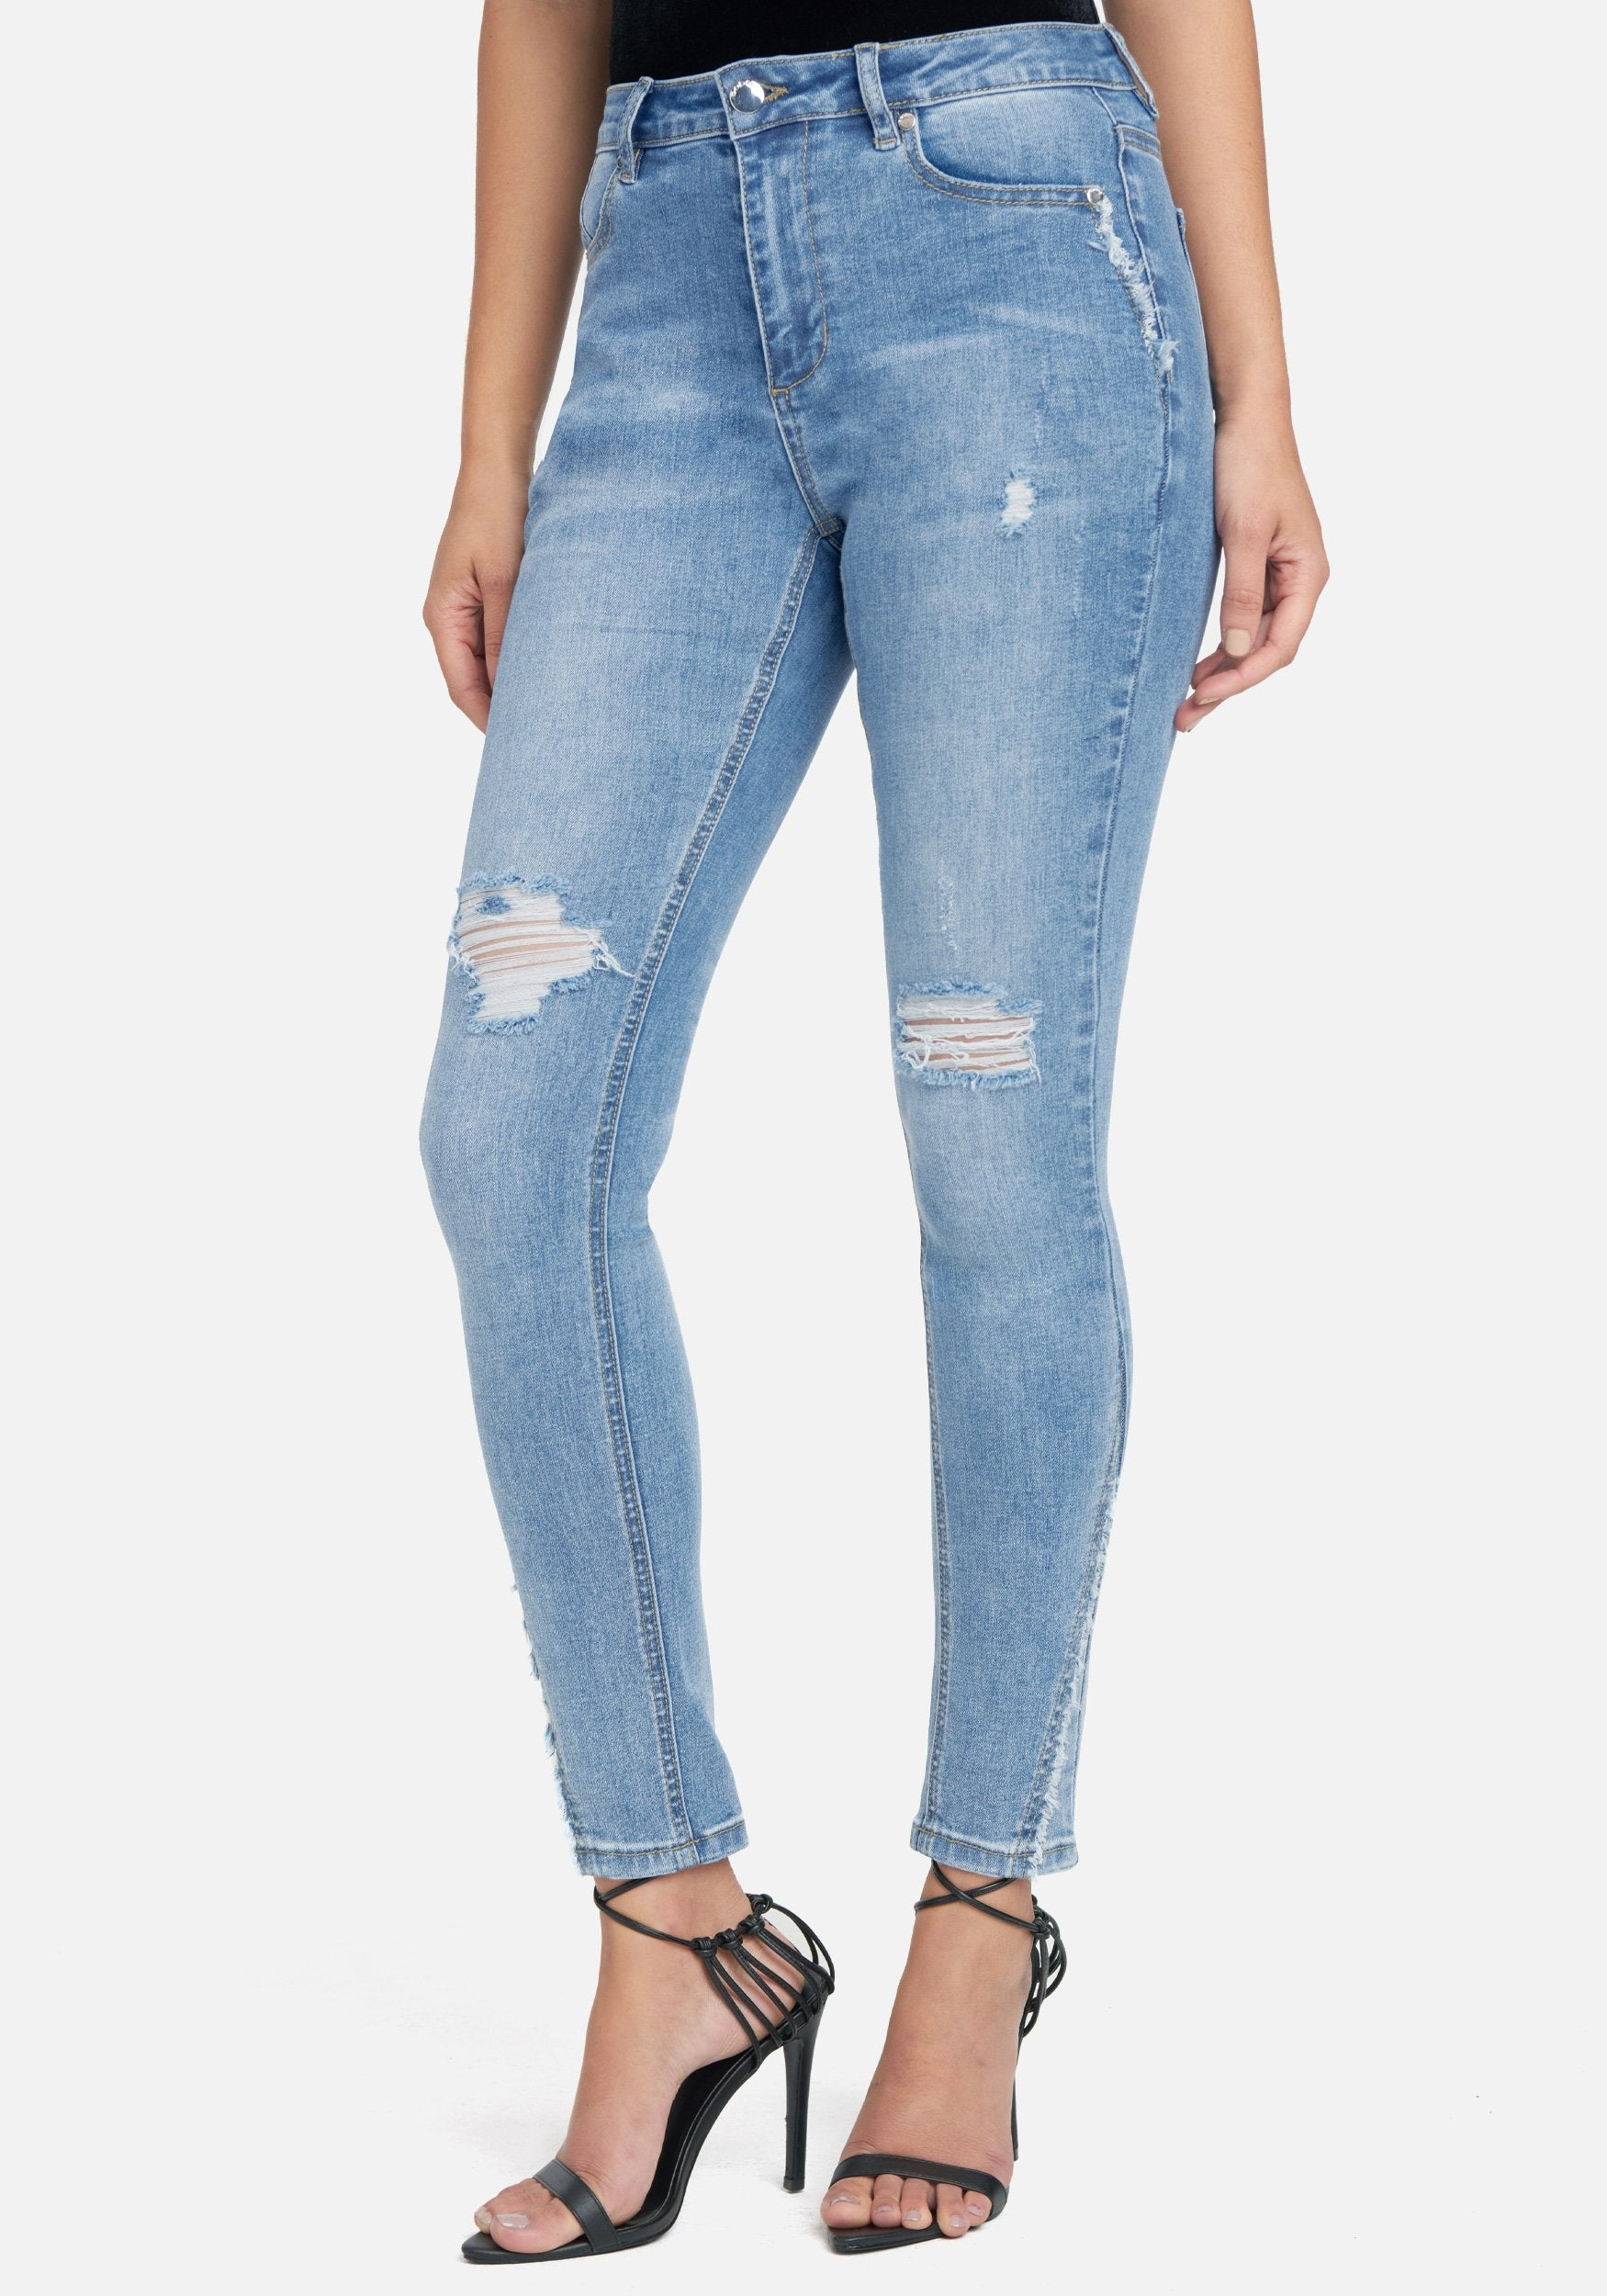 Bebe Women's Light Wash Skinny Jeans, Size 25 in Light Blue Wash Cotton/Spandex